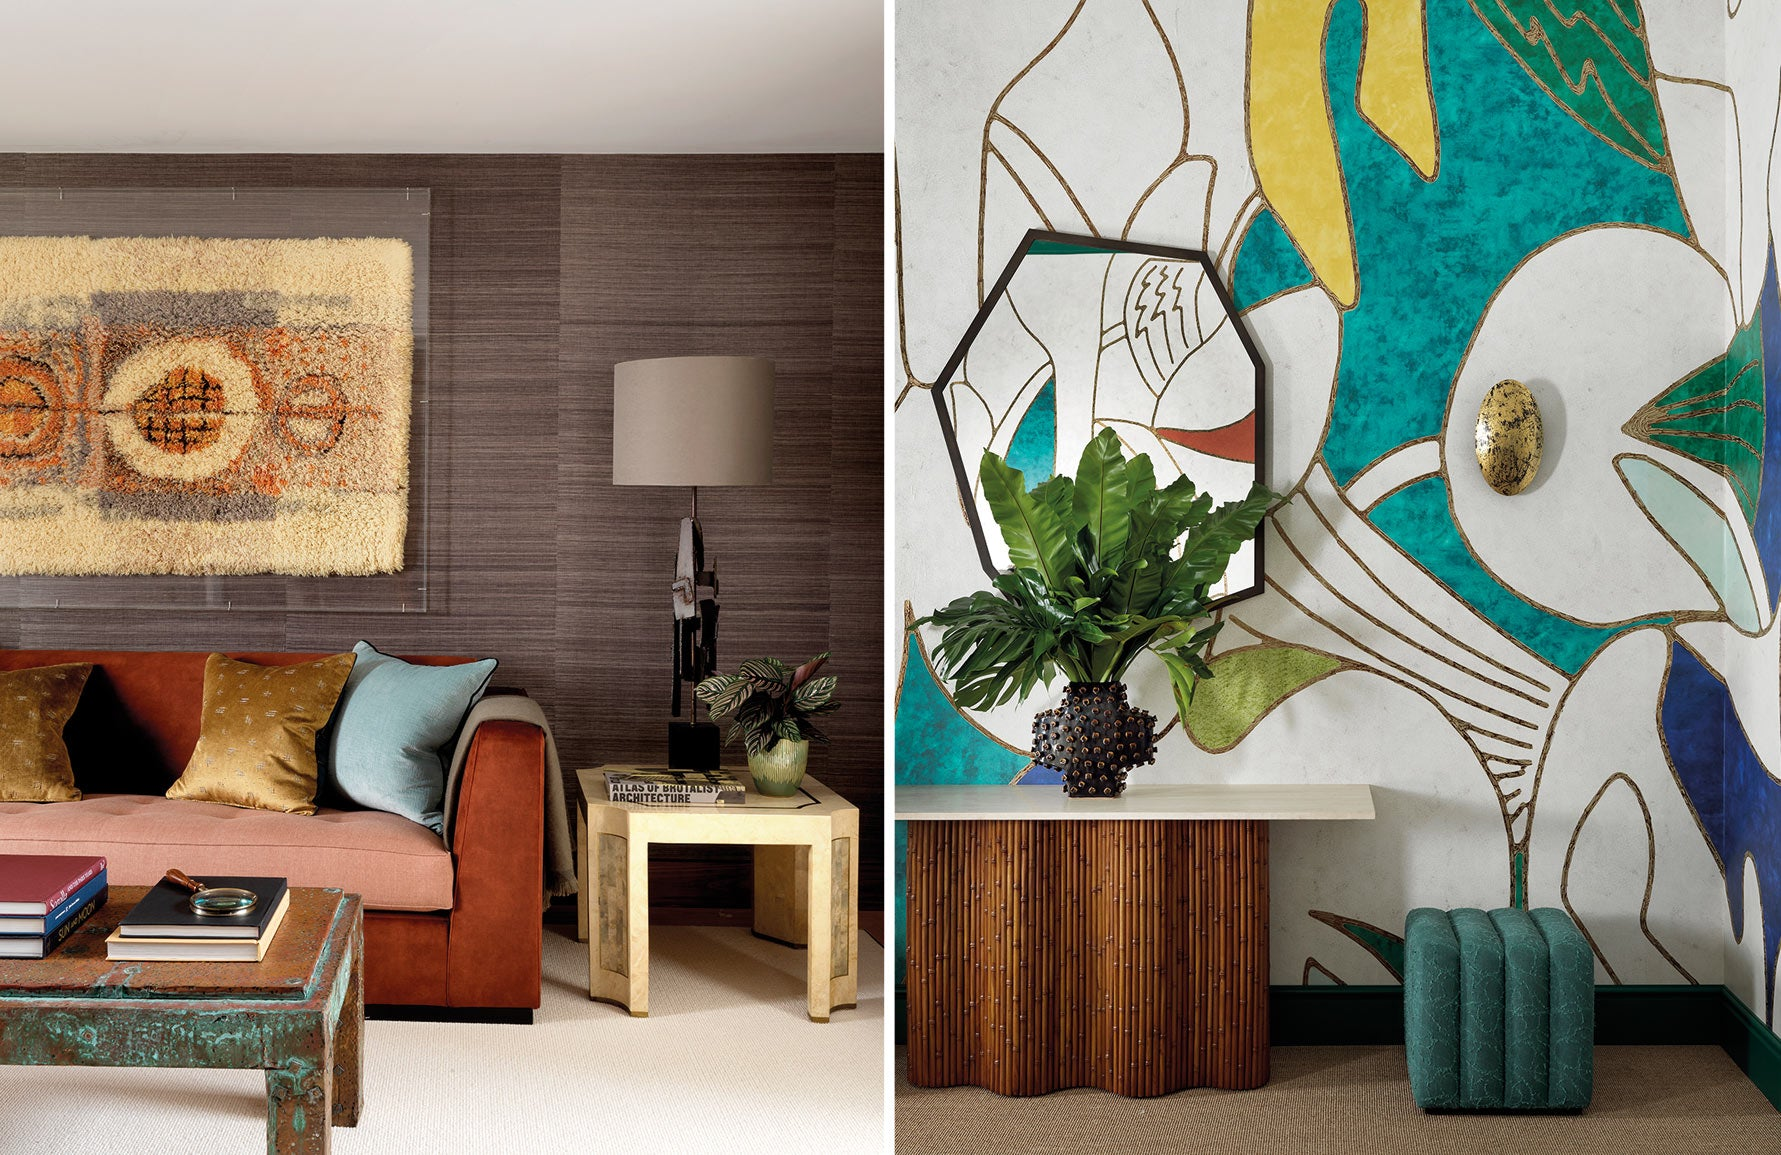 Combining Cultures Through Design   Natalia Miyar colourful interiors   Read more in The Luxurist